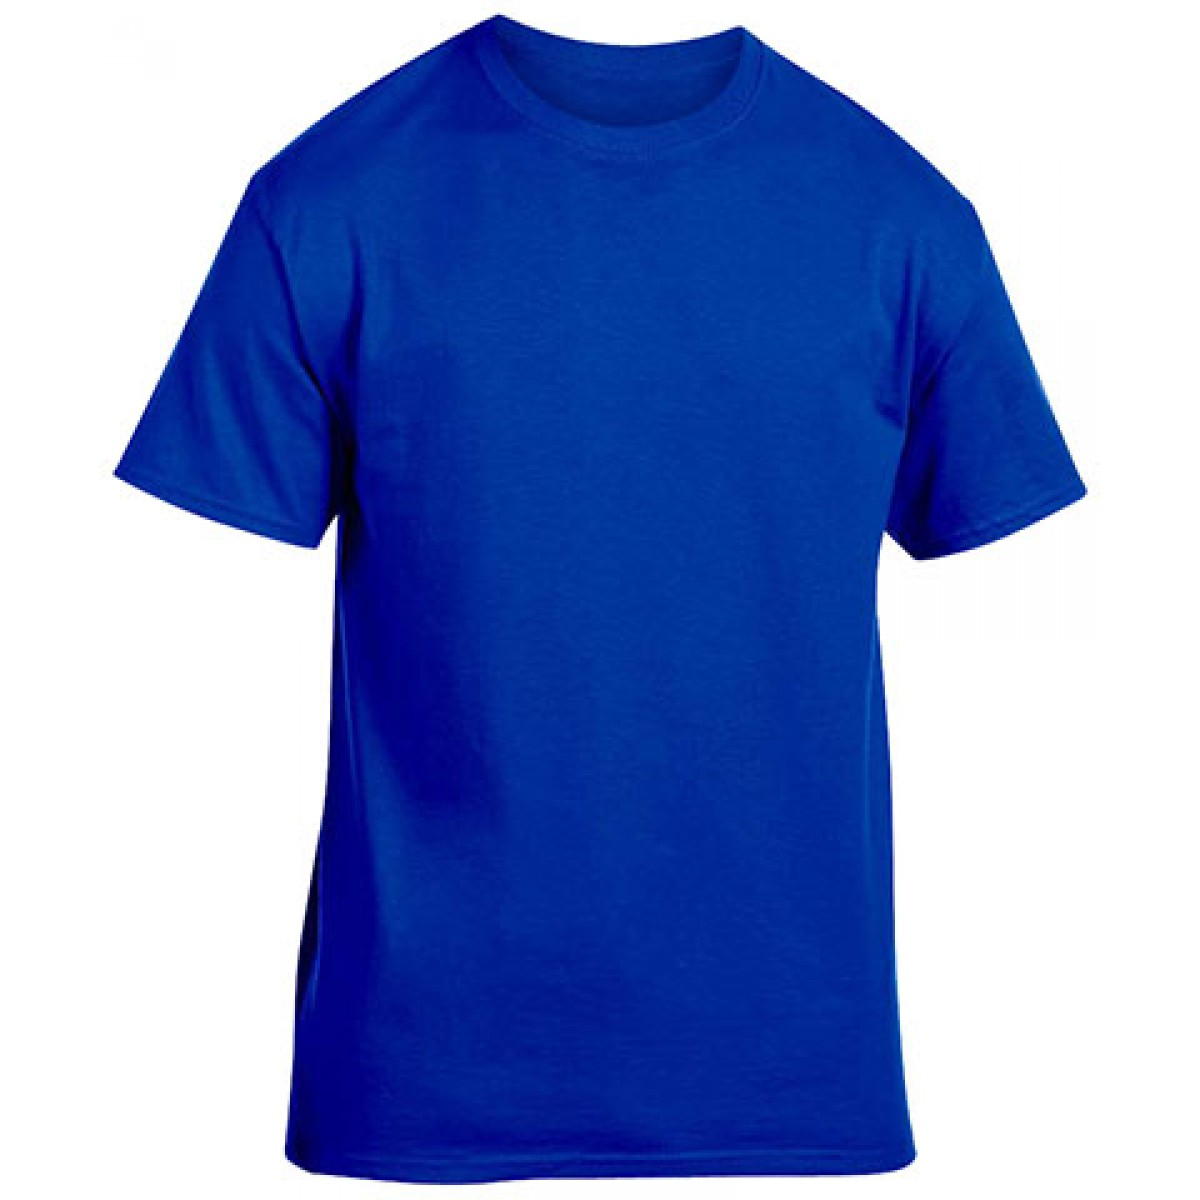 Cotton Short Sleeve T-Shirt-Royal Blue-L